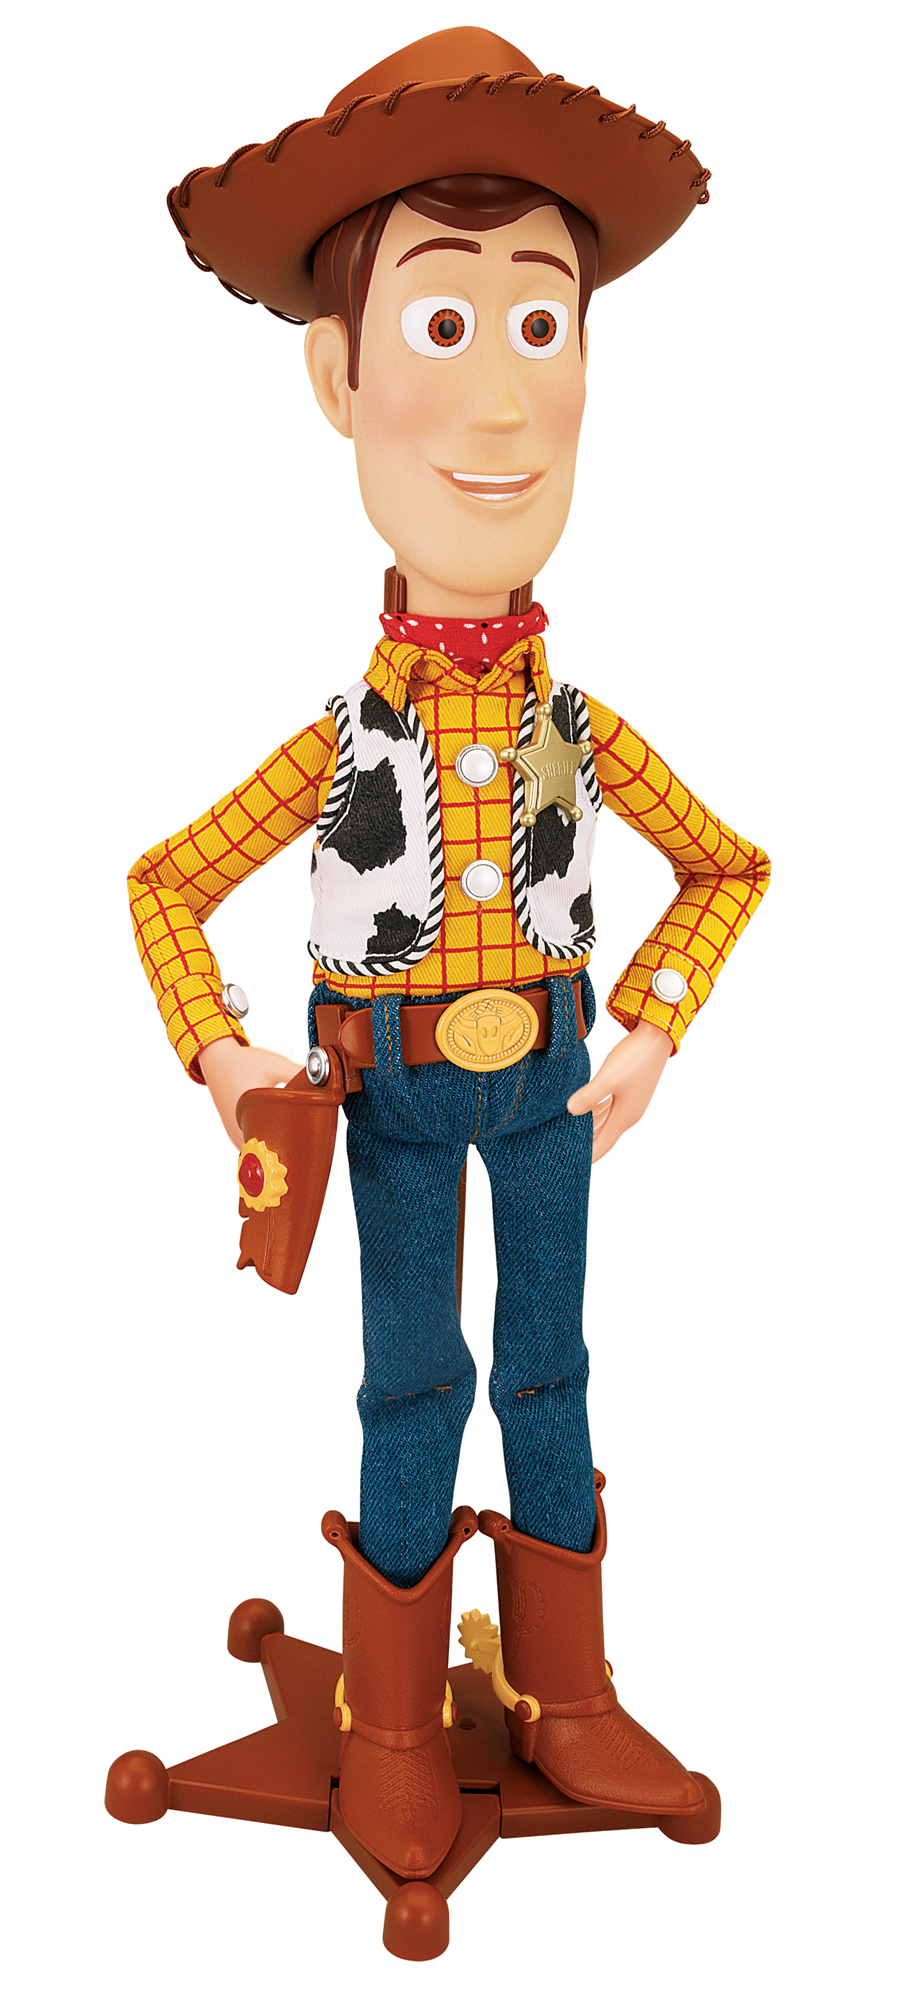 Toy Story Figures : Woody toy story merchandise wiki fandom powered by wikia